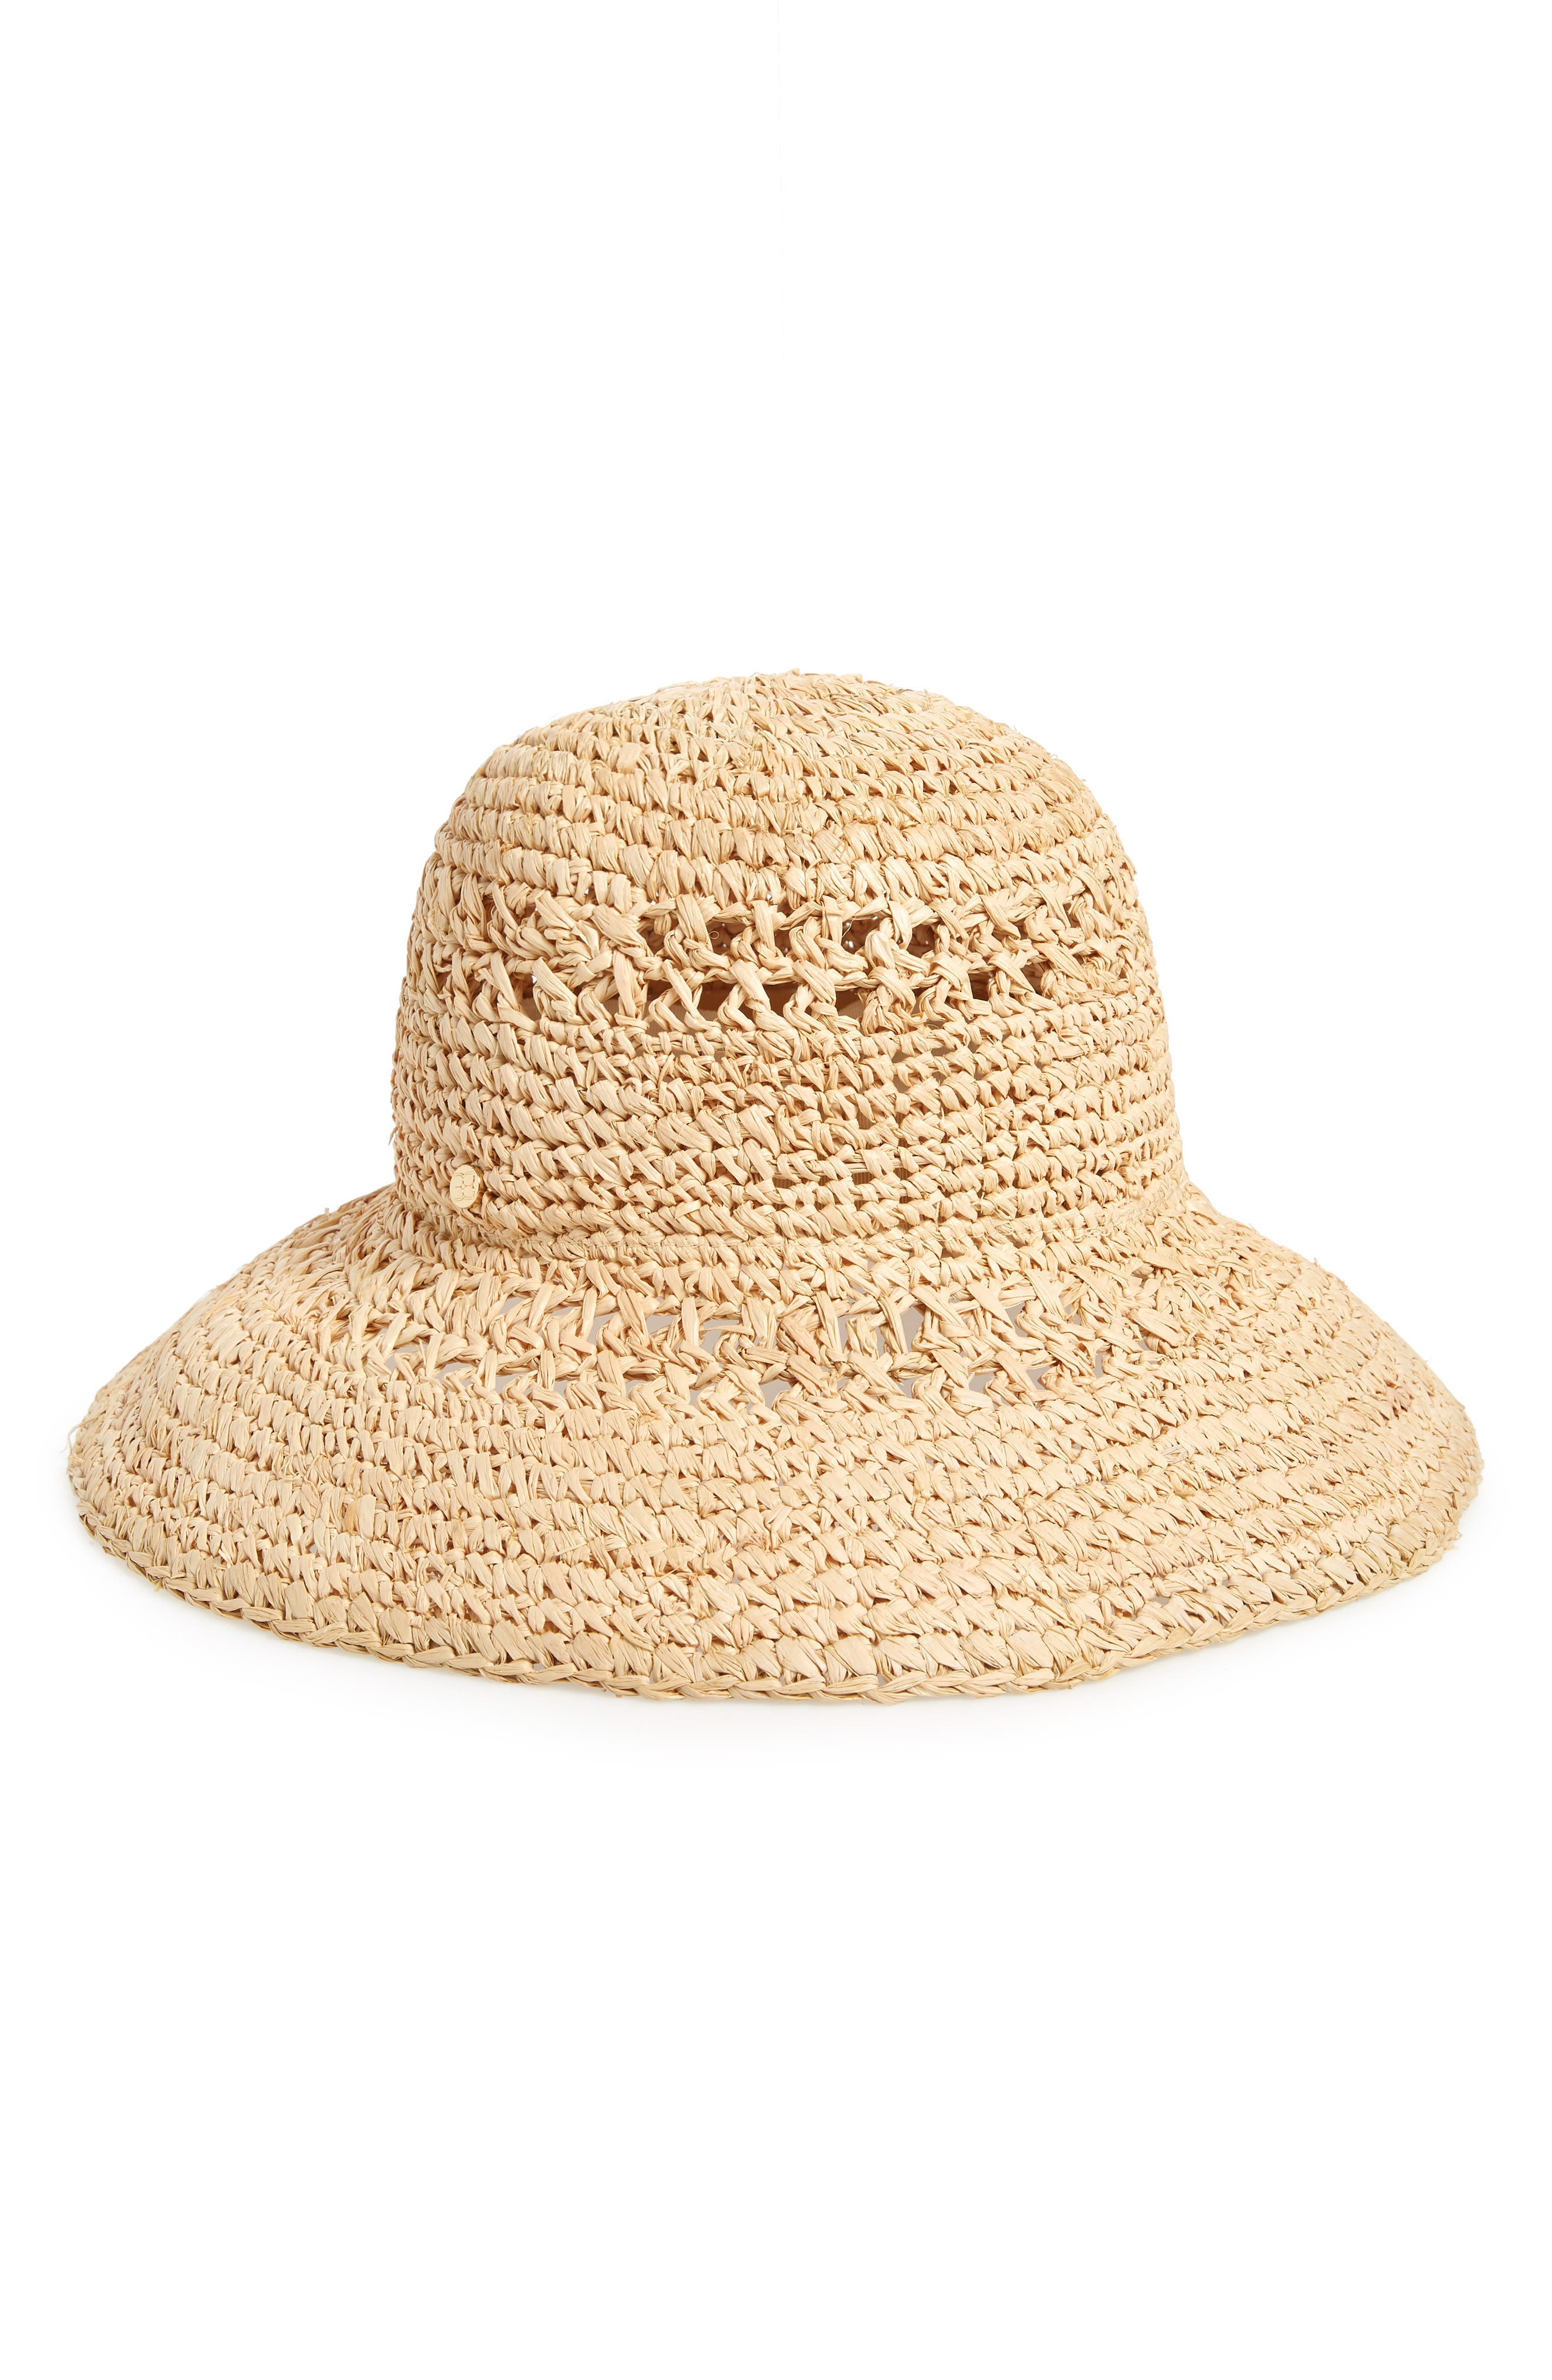 Straw Bucket Hat,                         Main,                         color, NATURAL